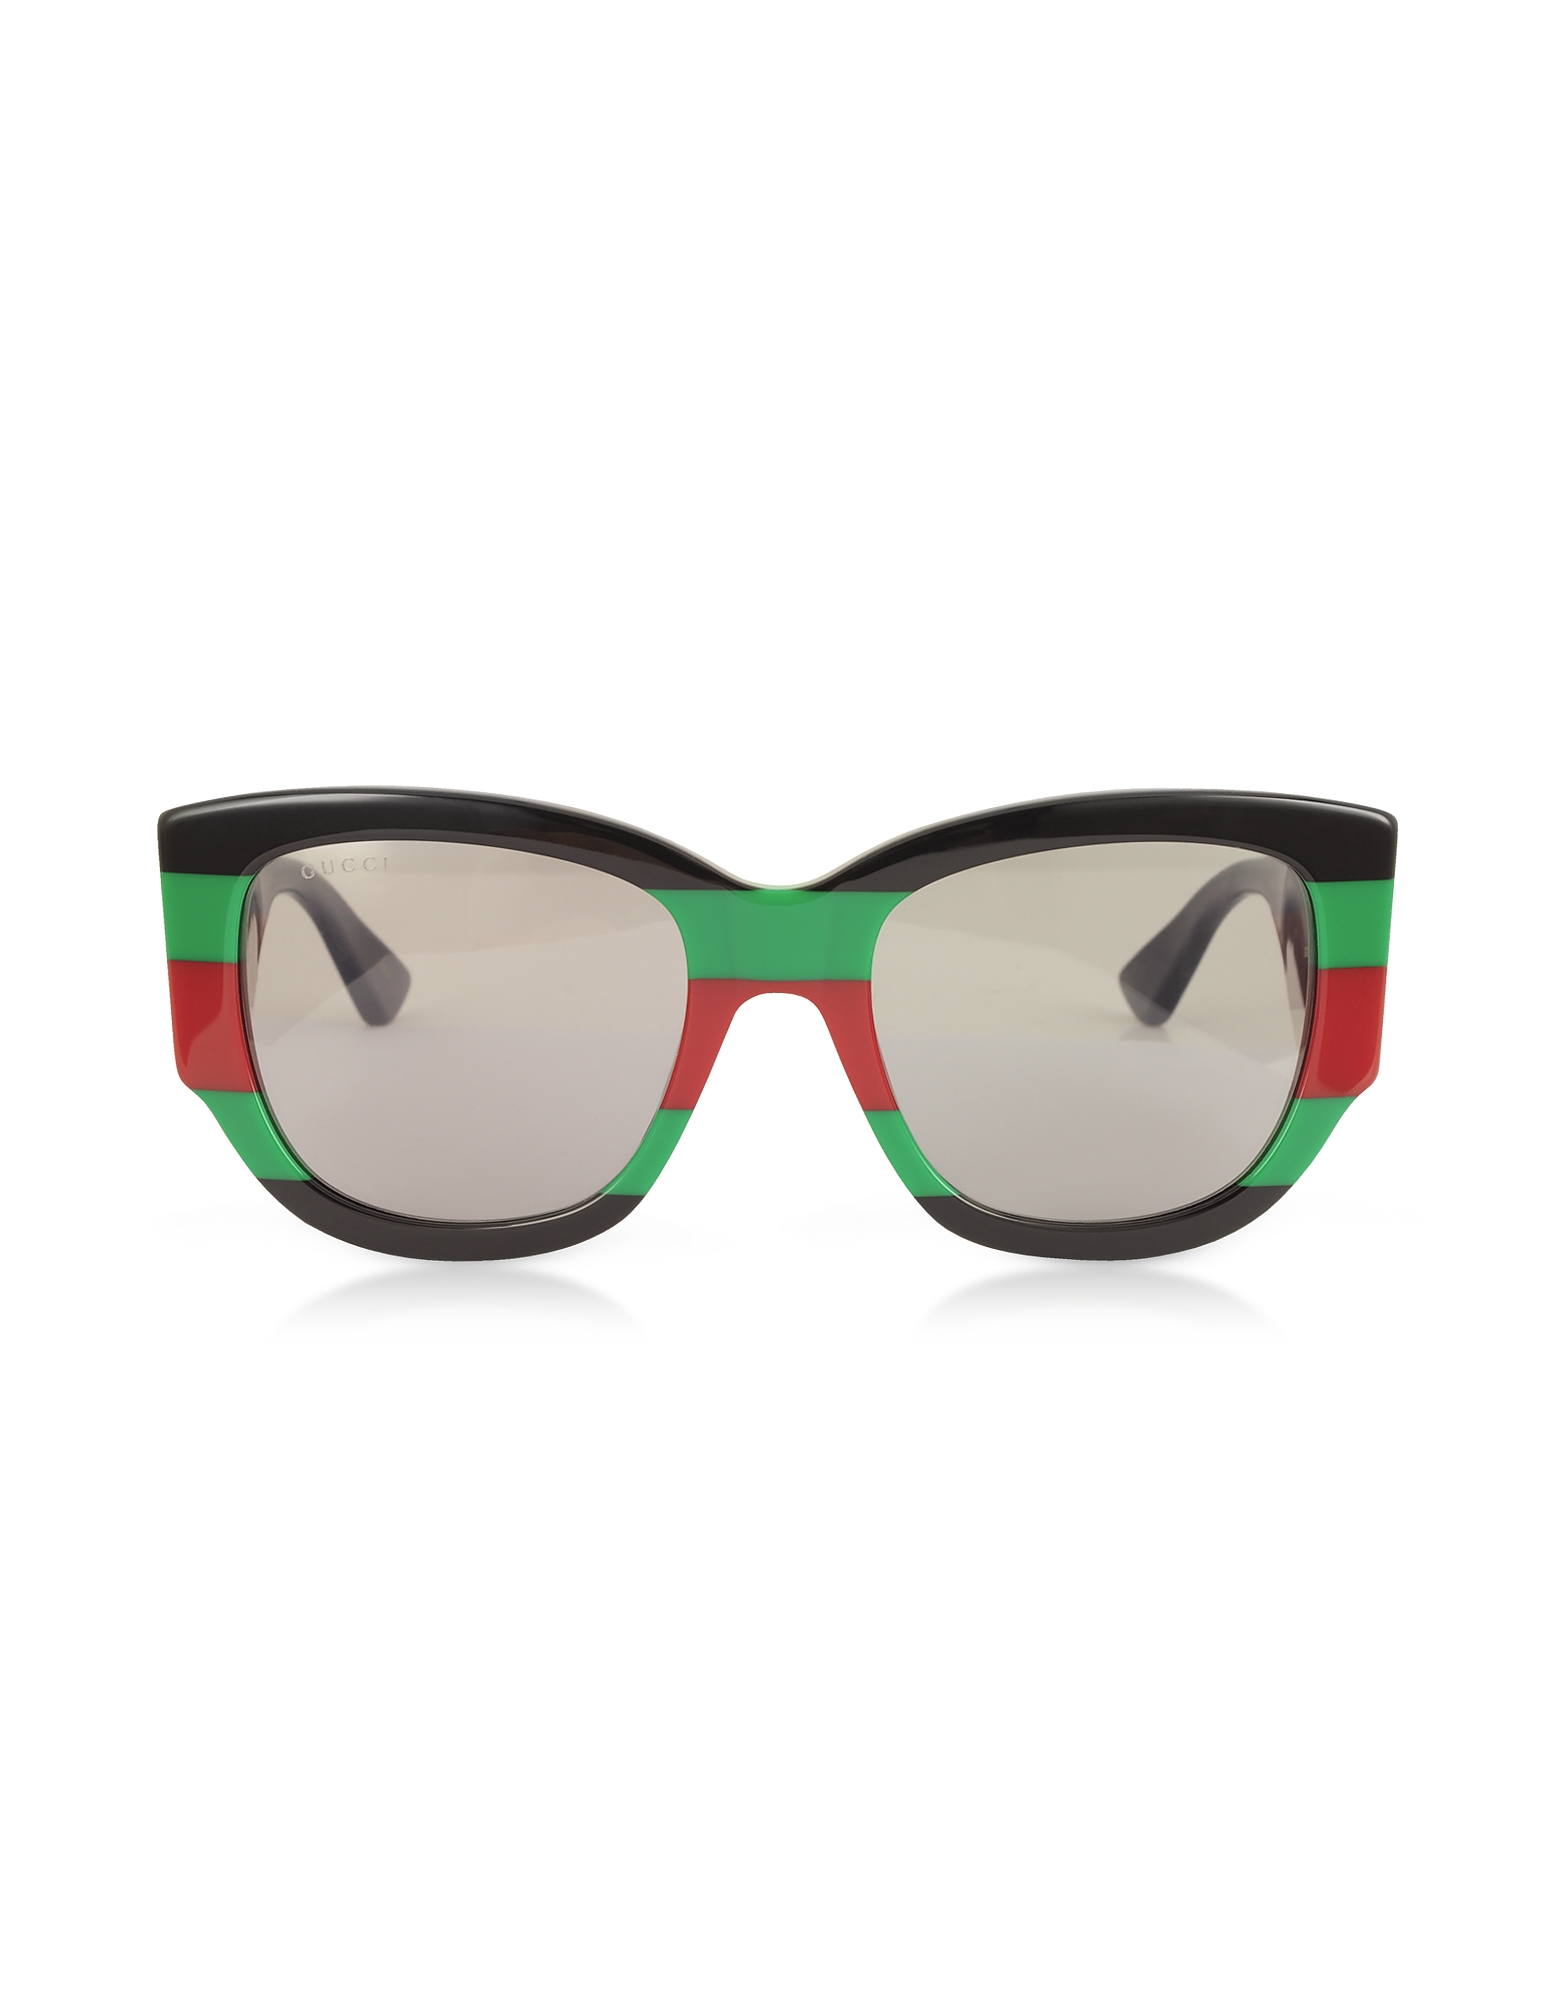 Gucci Designer Sunglasses, GG0276S Color Block Oversize Cat Eye Acetate Sunglassesw/Sylvie Web Temples